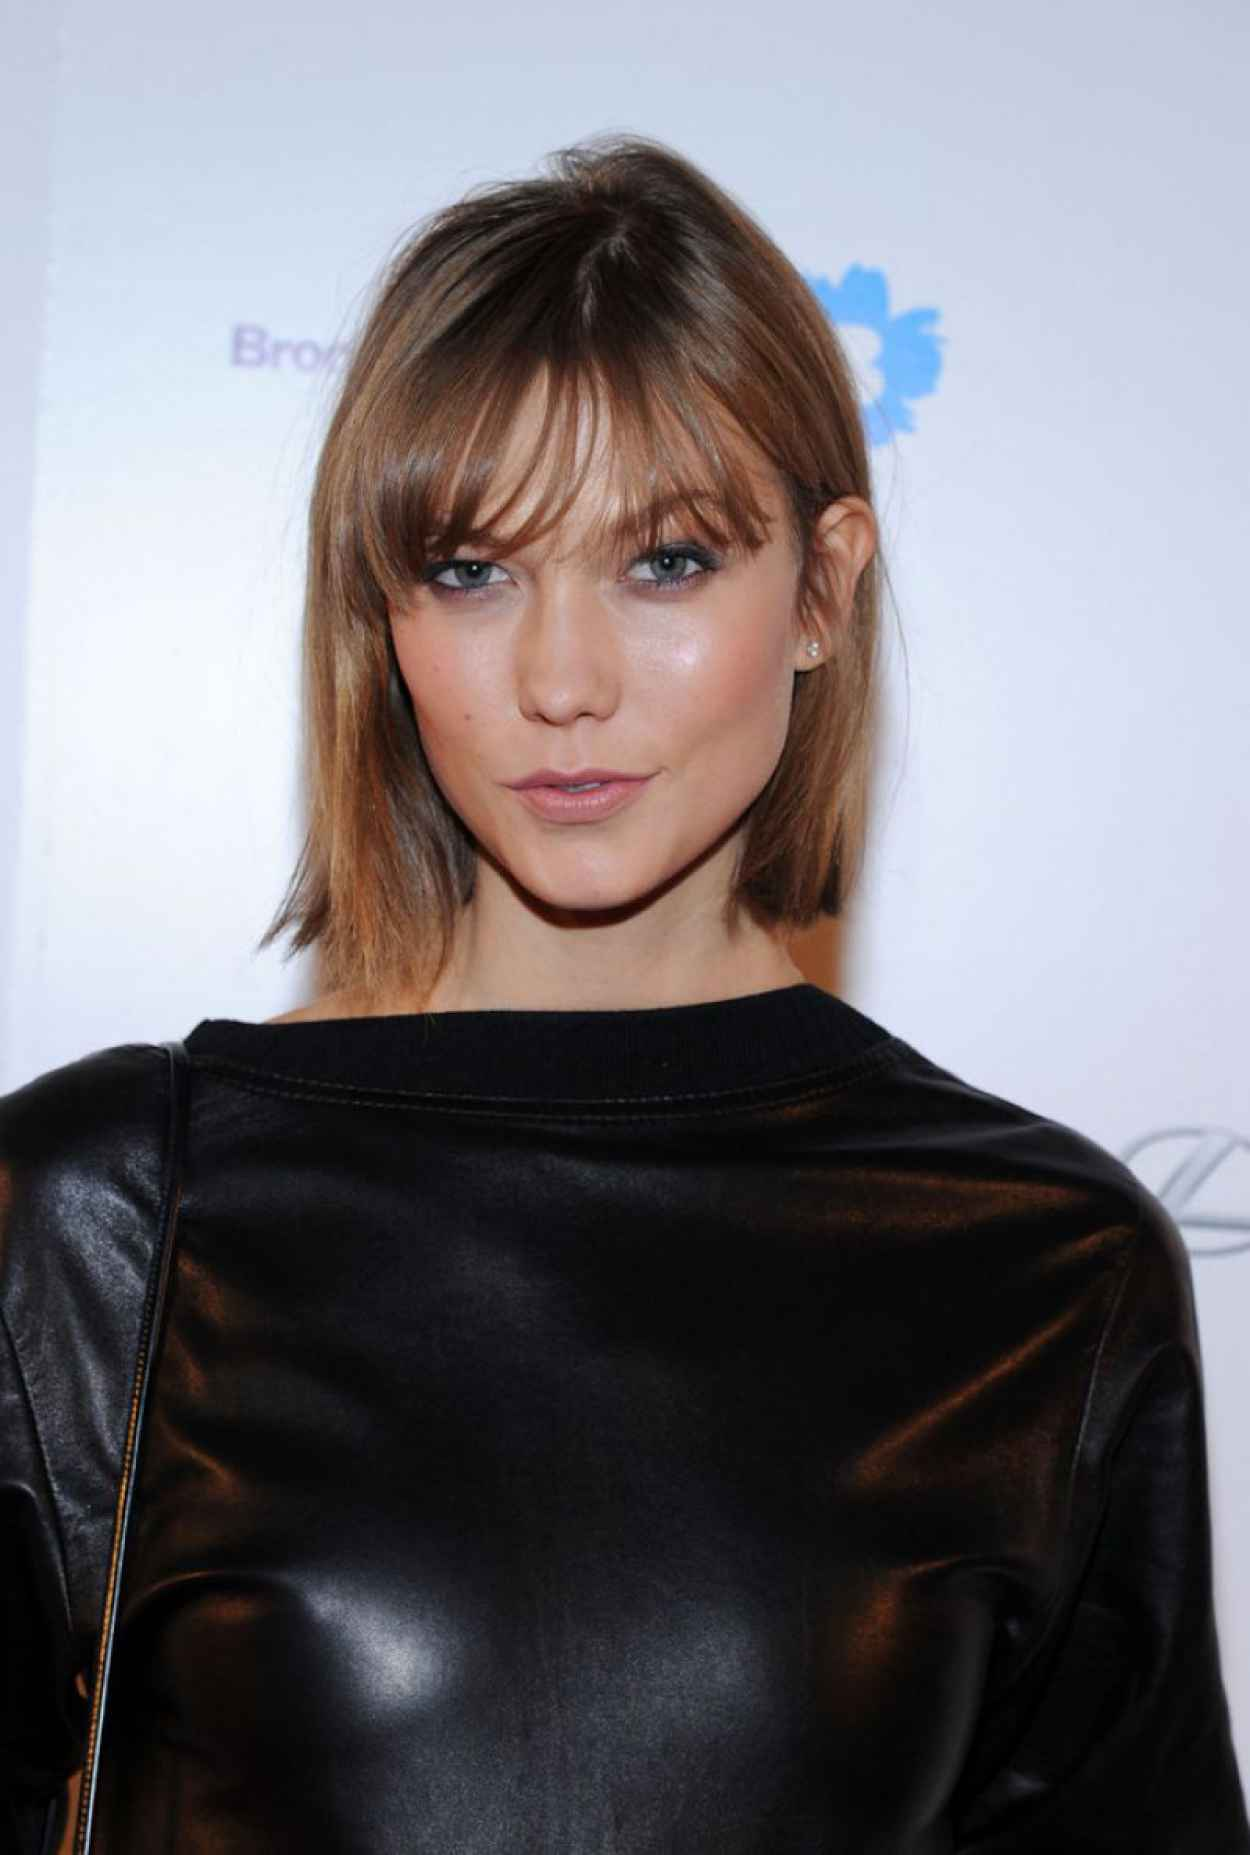 Karlie Kloss Red Carpet Photos - The Fashion World of Jean Paul Gaultier-1